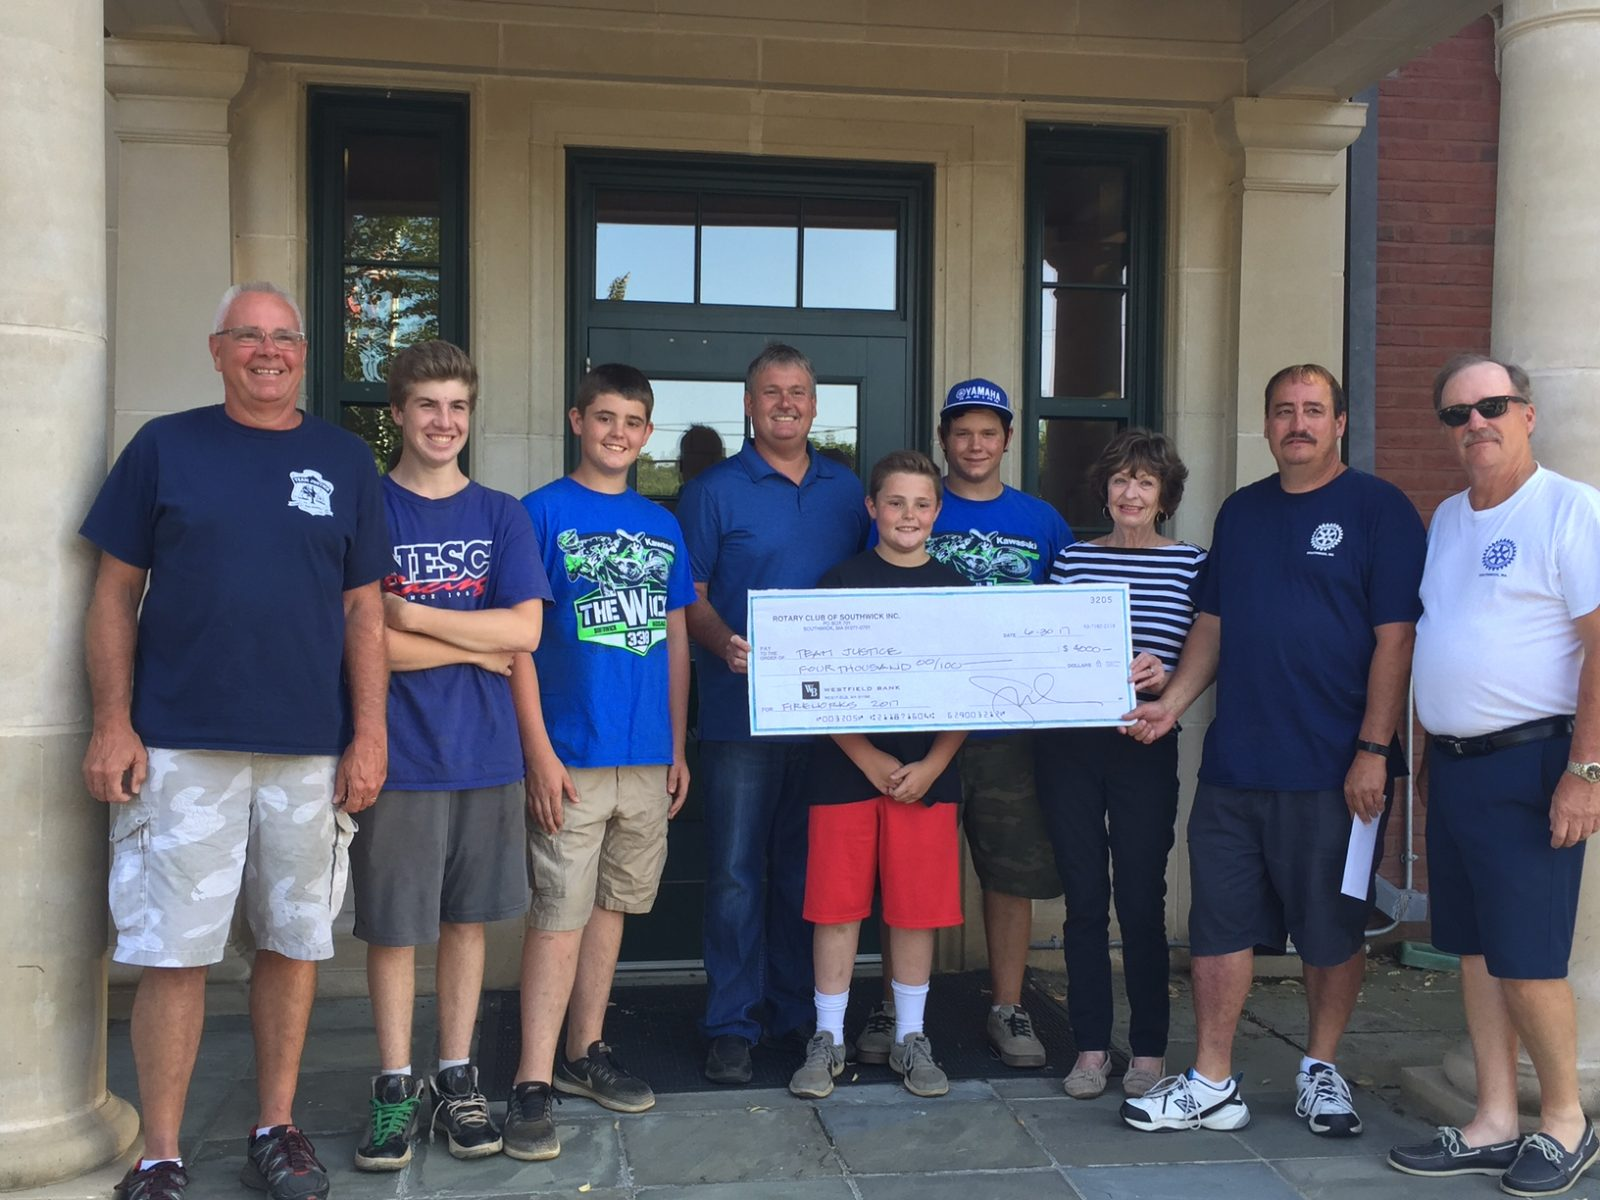 Rotary Club presents check to help fireworks